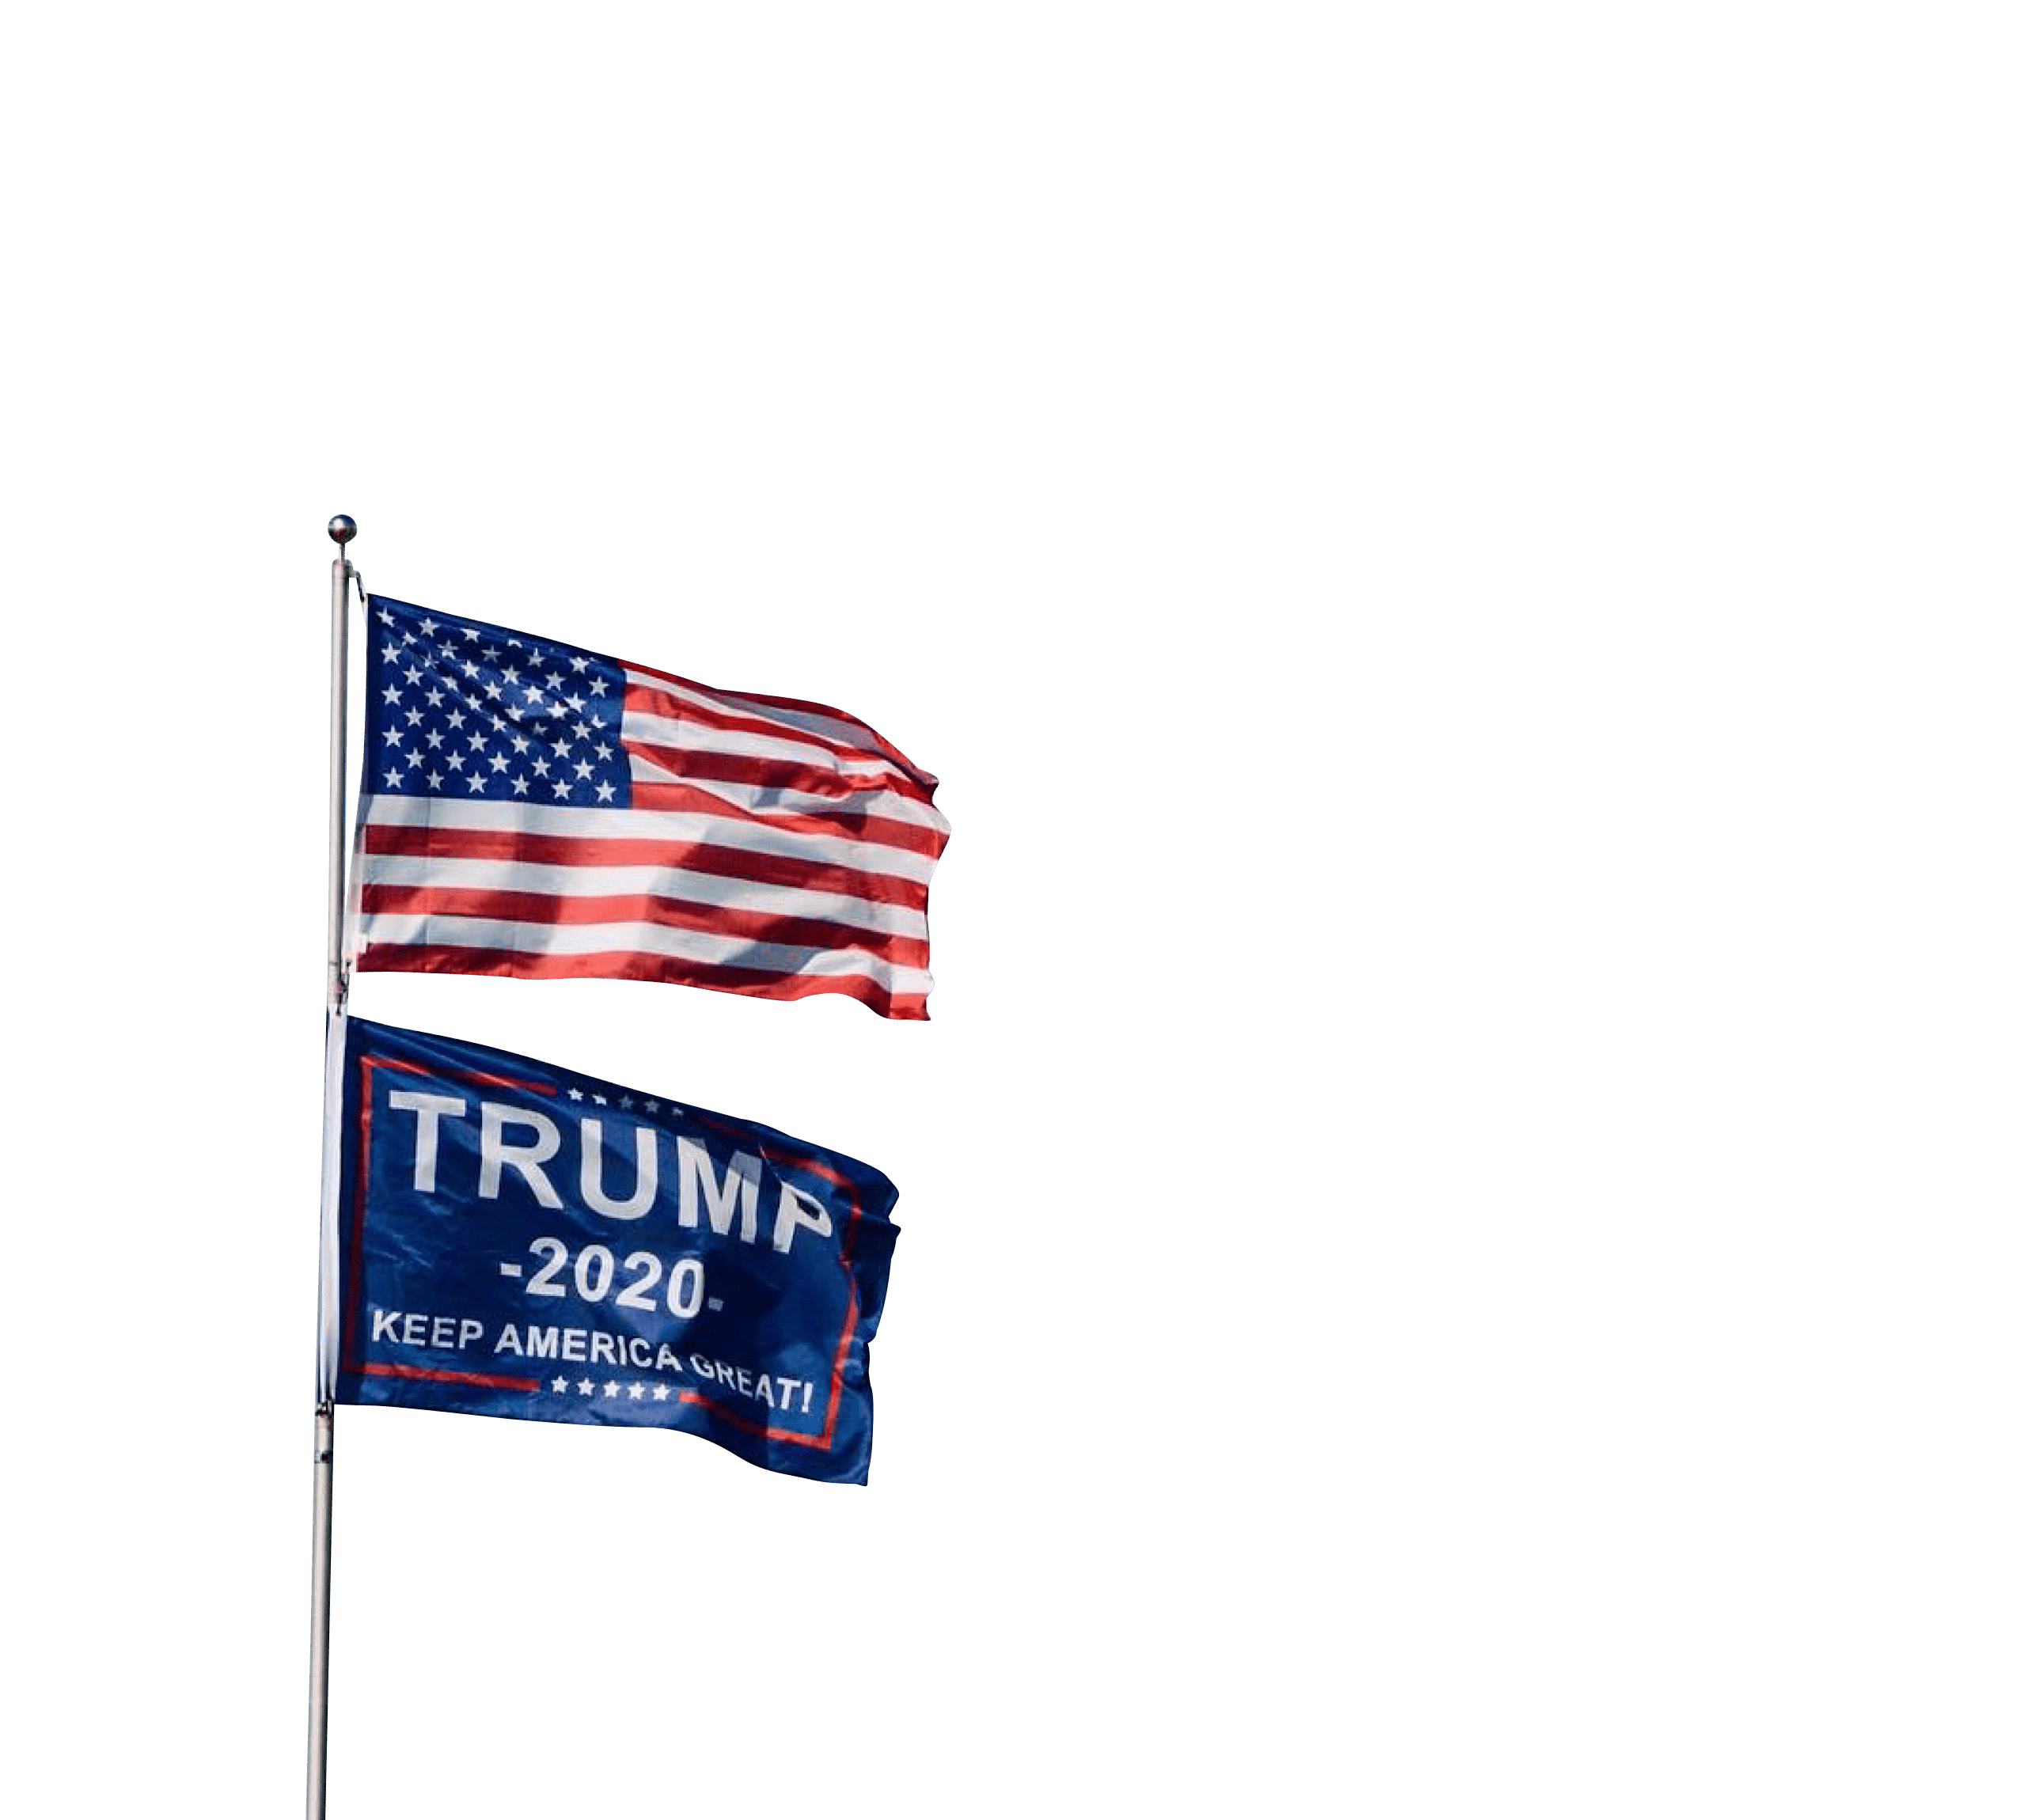 Usa flag and trump flag  transparent background.png